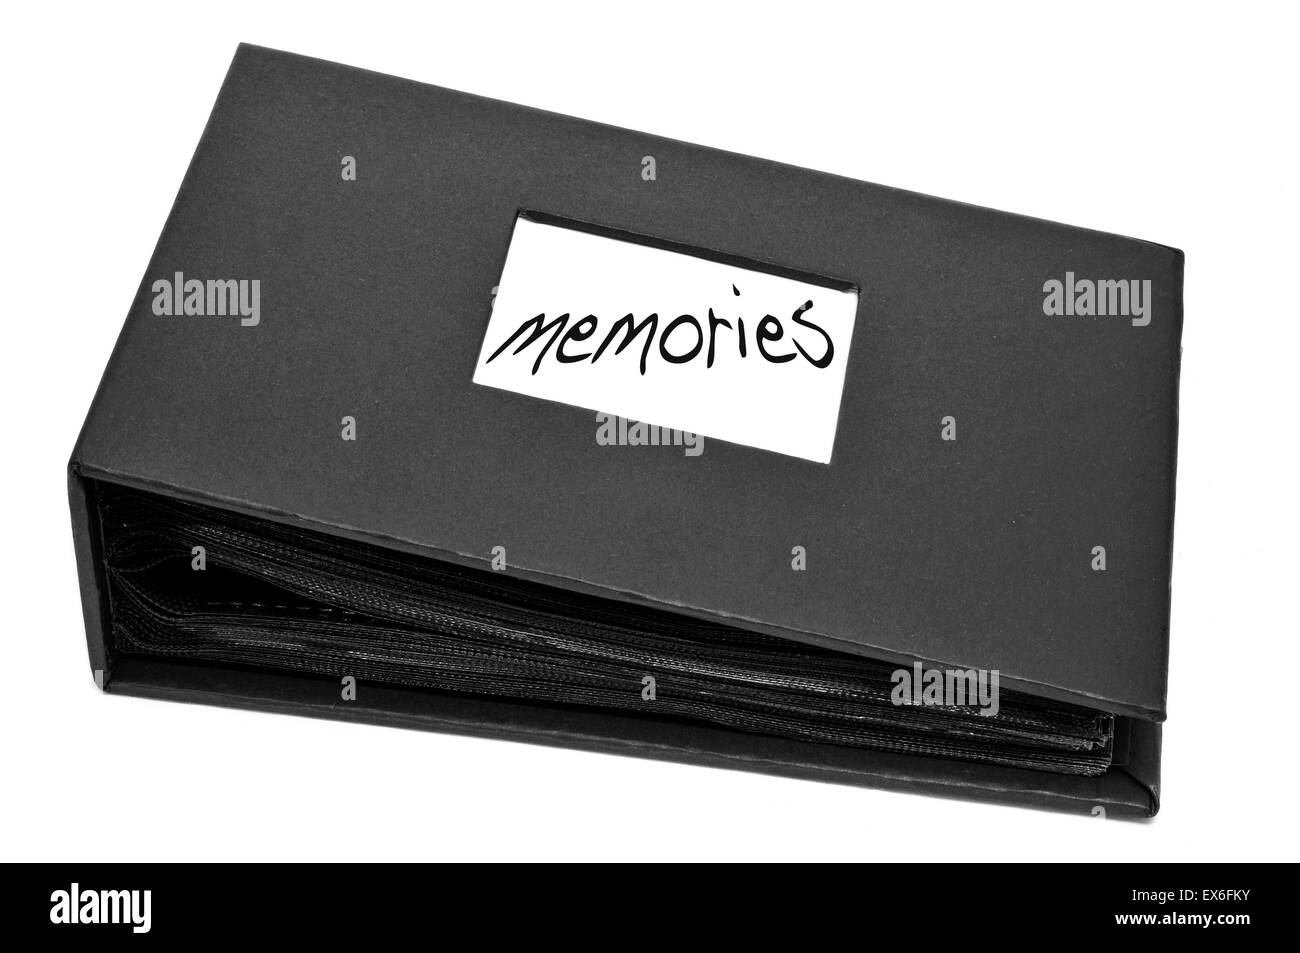 a photo album with the word memories written on it on a white background - Stock Image